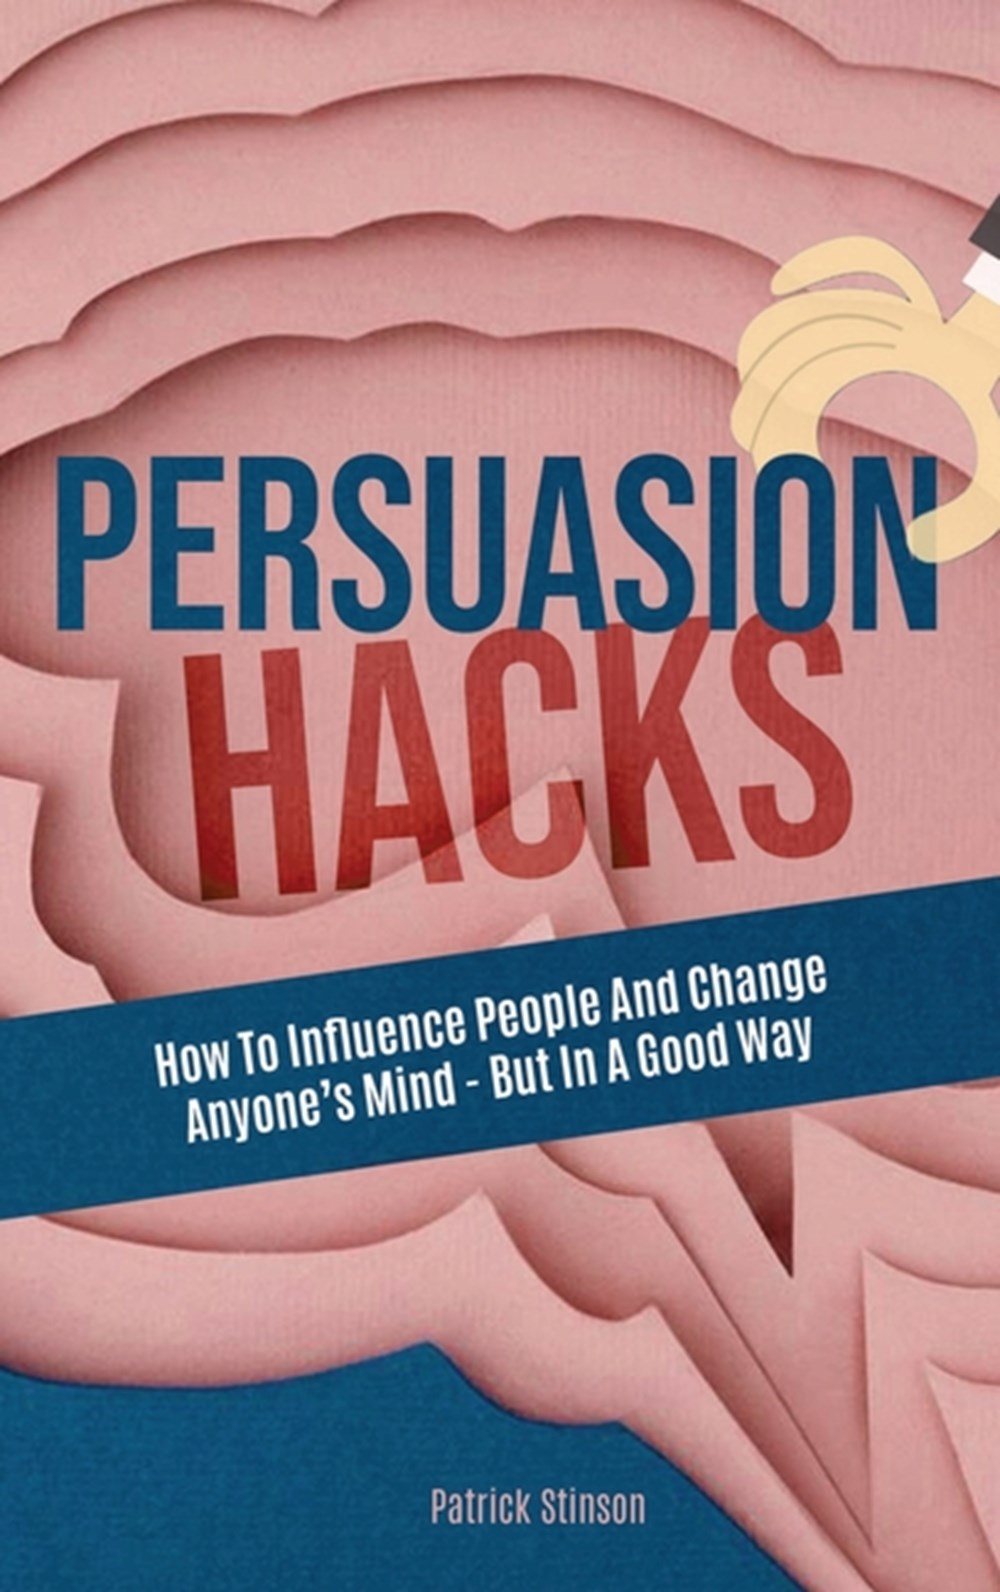 Persuasion Hacks How To Influence People And Change Anyone's Mind - But In A Good Way